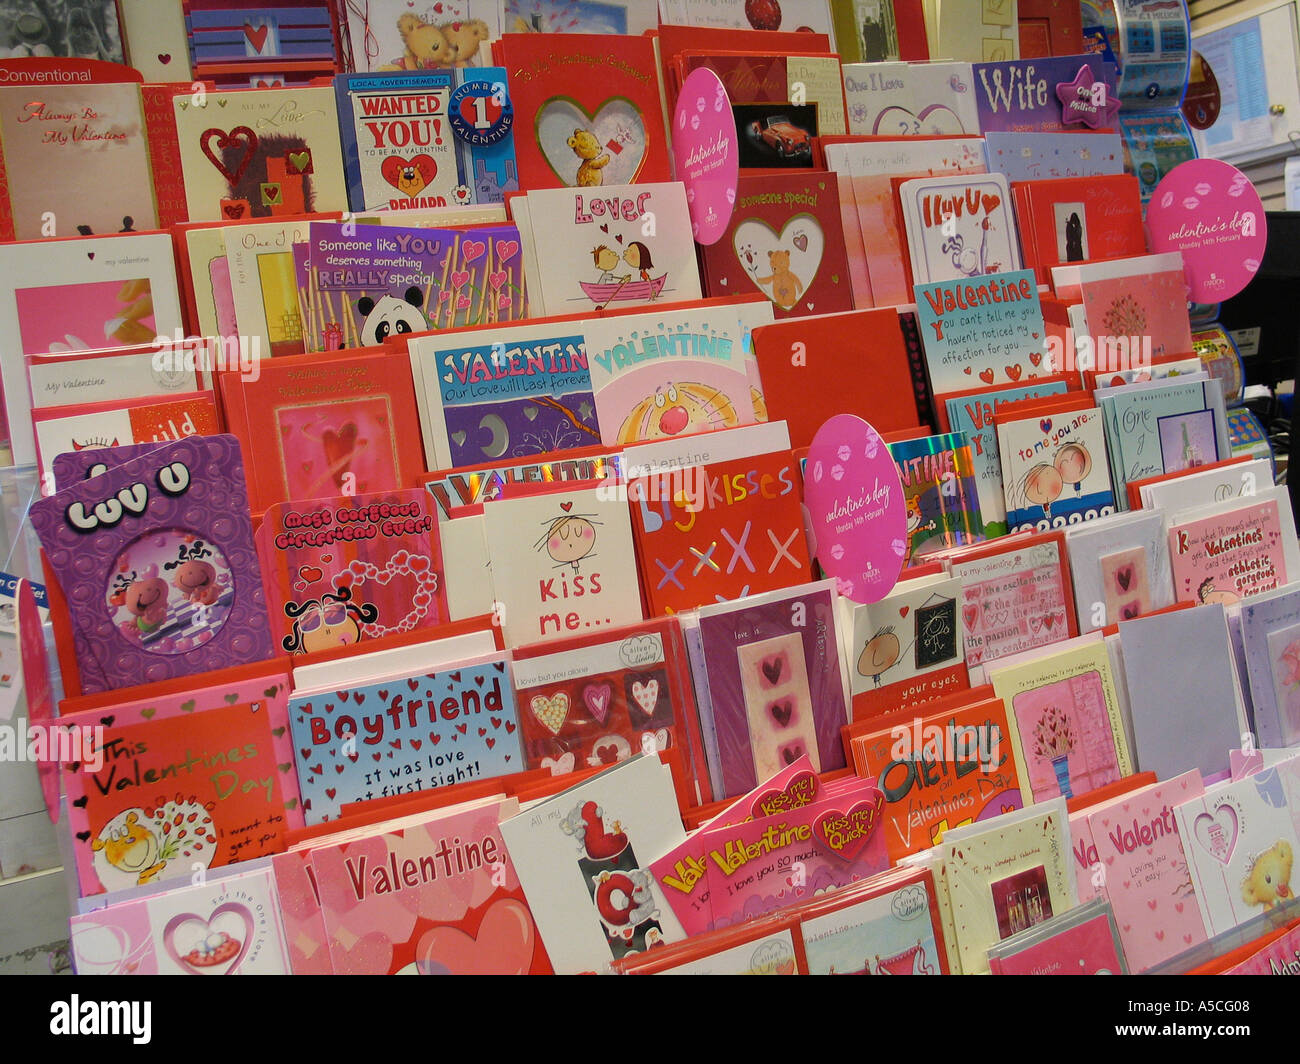 Valentines cards on display in a shop - Stock Image